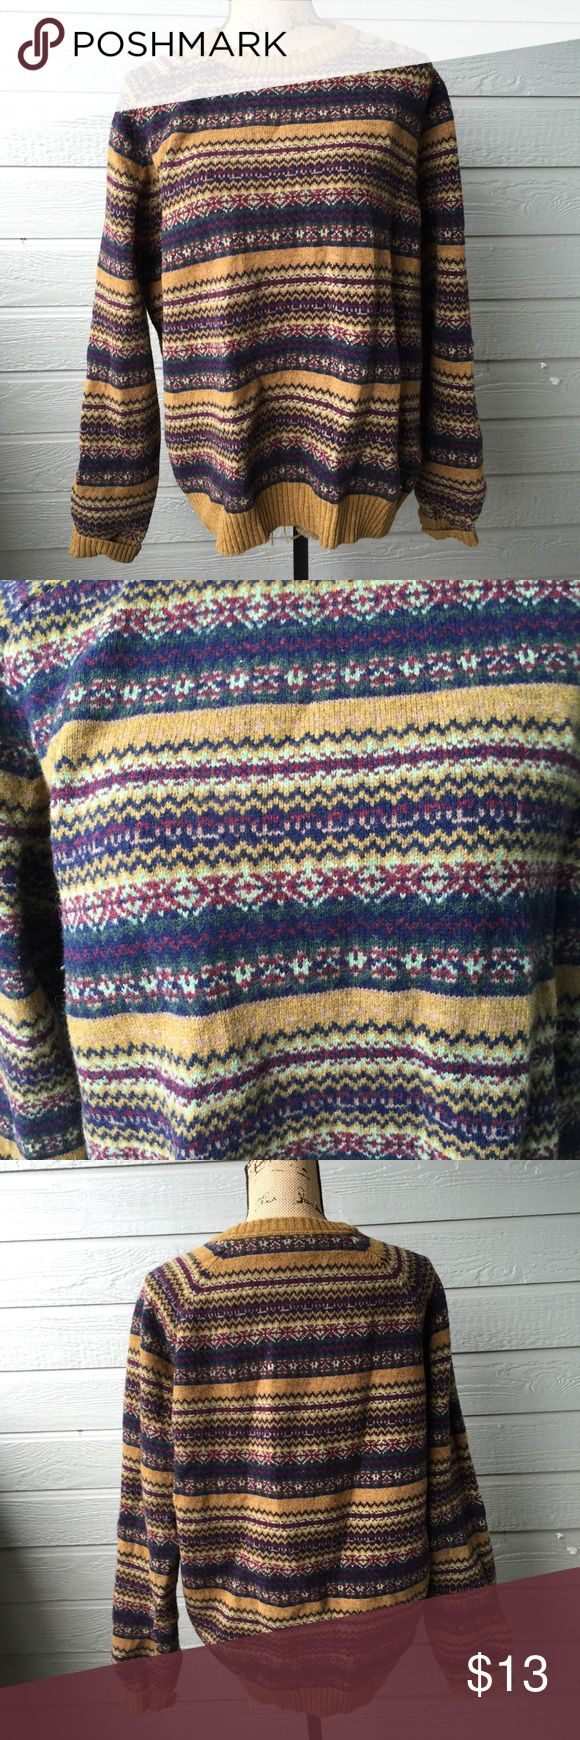 Striped Sweater Good condition, heavy and warm. Probably a men's sweater but would look adorable as an oversized women's sweater. Especially with thigh length boots and a skirt or skinny jeans. 100% lammwolle. Lands' End Sweaters Crew & Scoop Necks